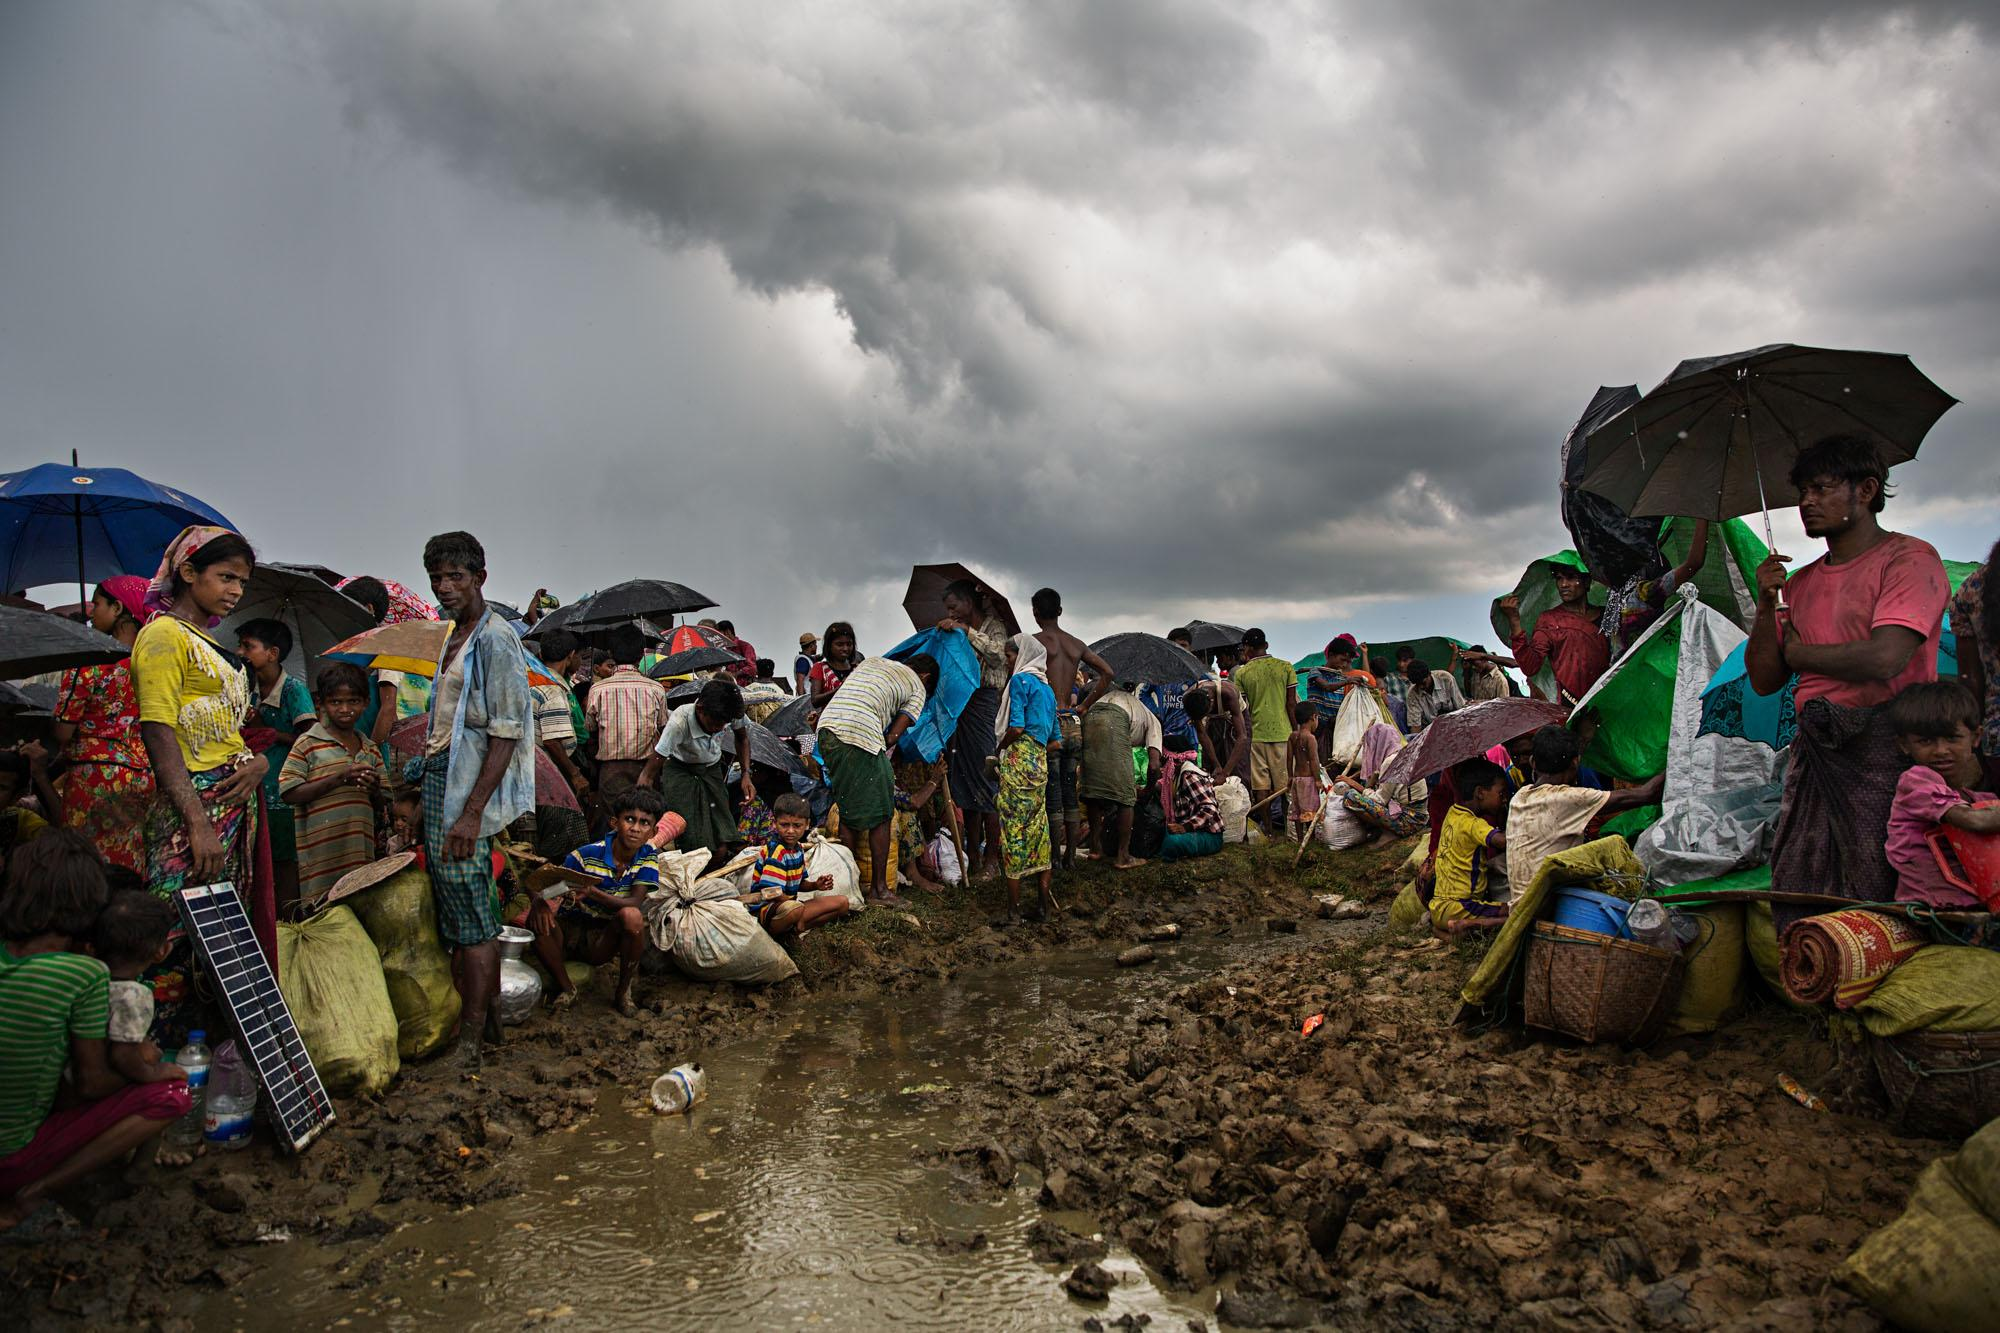 Rohingya refugees huddle in a muddy field in a monsoon rain after crossing the Naf River from Myanmar into Bangladesh. Many of them walked for weeks to get here, some with gun or knife wounds, and had to wait all day and into the night in this field before being allowed into the camps in Cox's Bazar.